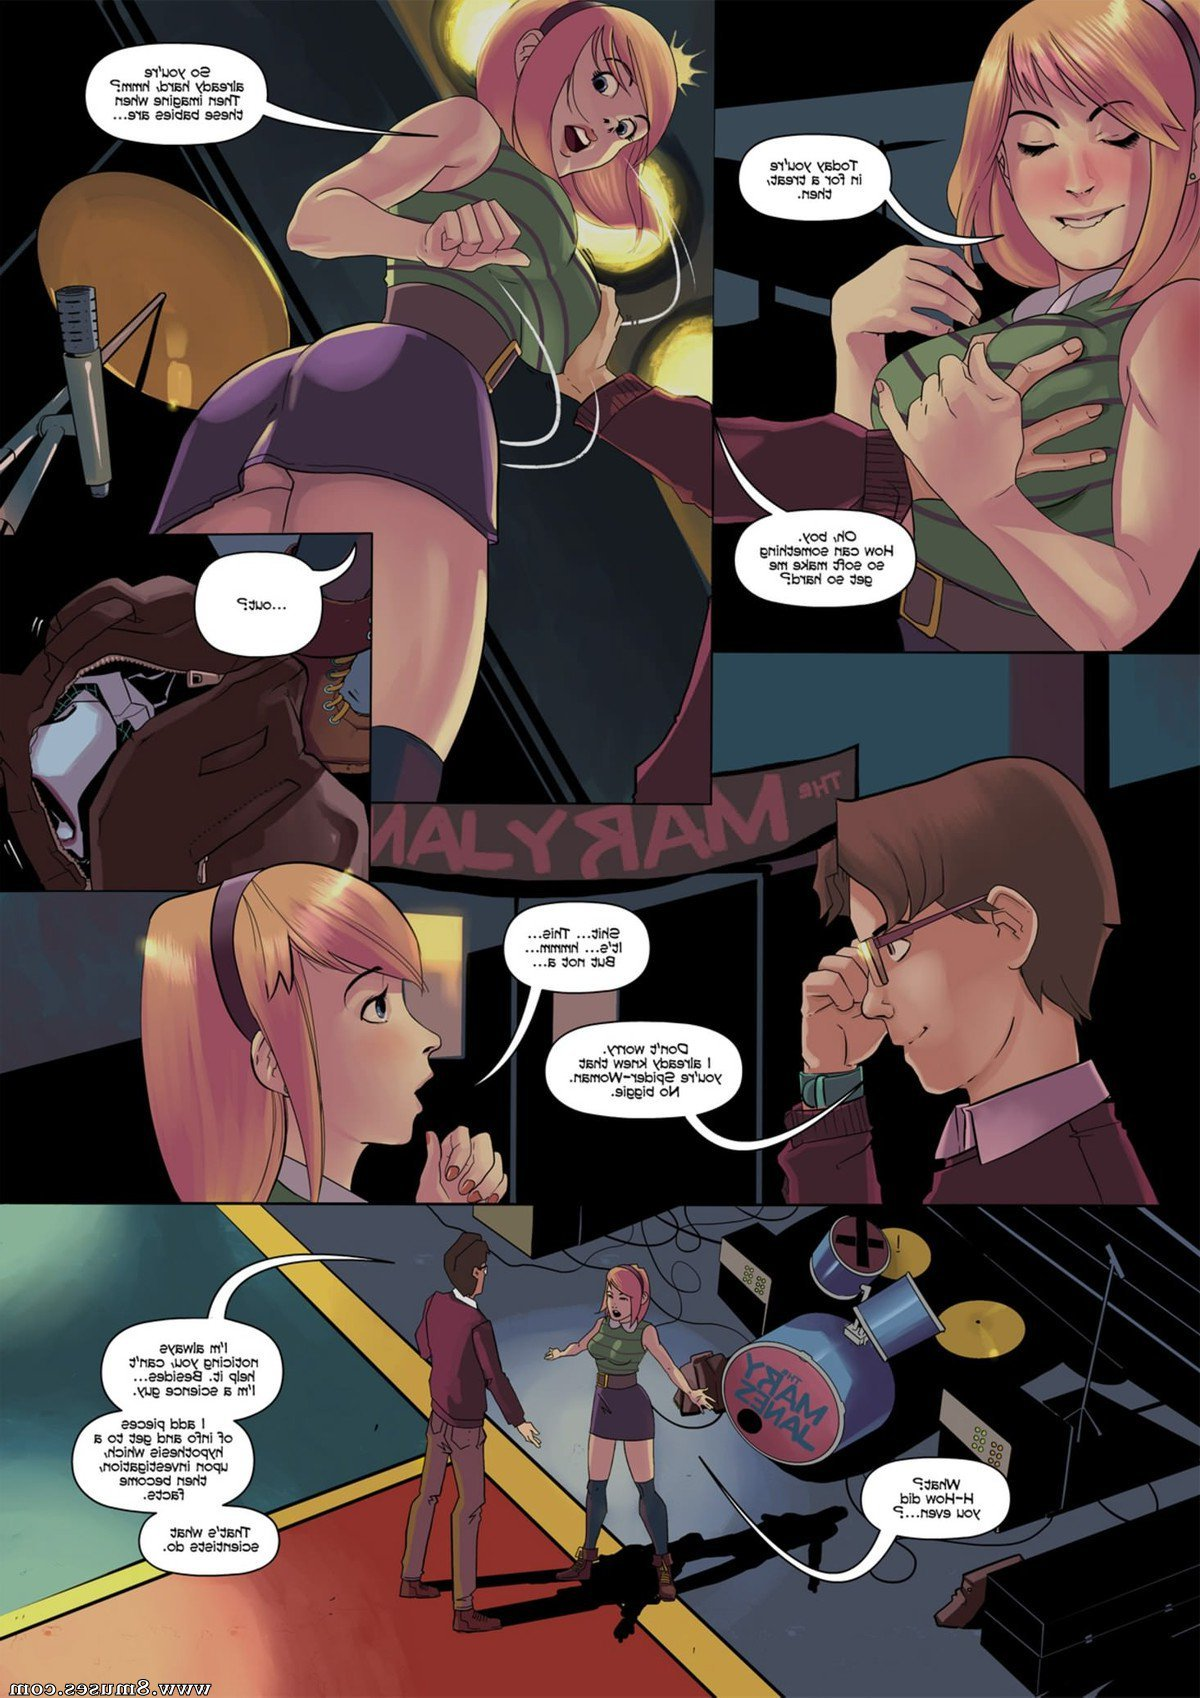 Tracy-Scops-Comics/SpiderGwen/Issue-1 SpiderGwen_-_Issue_1_5.jpg